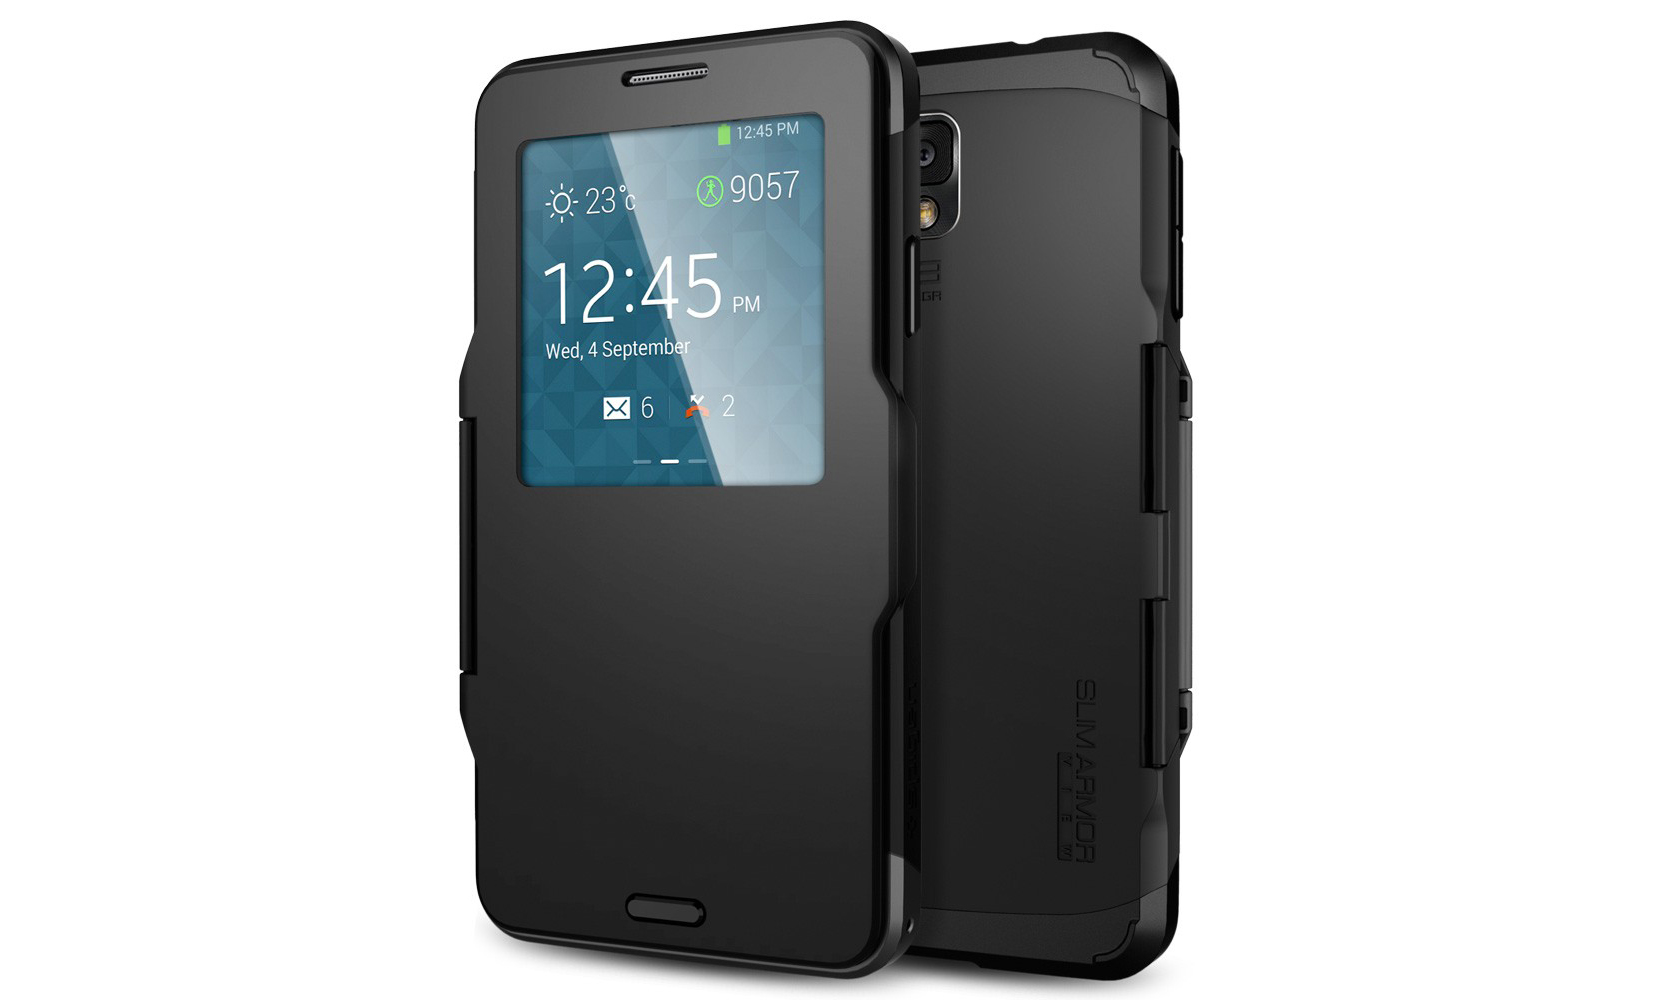 samsung note 3 s-view cover